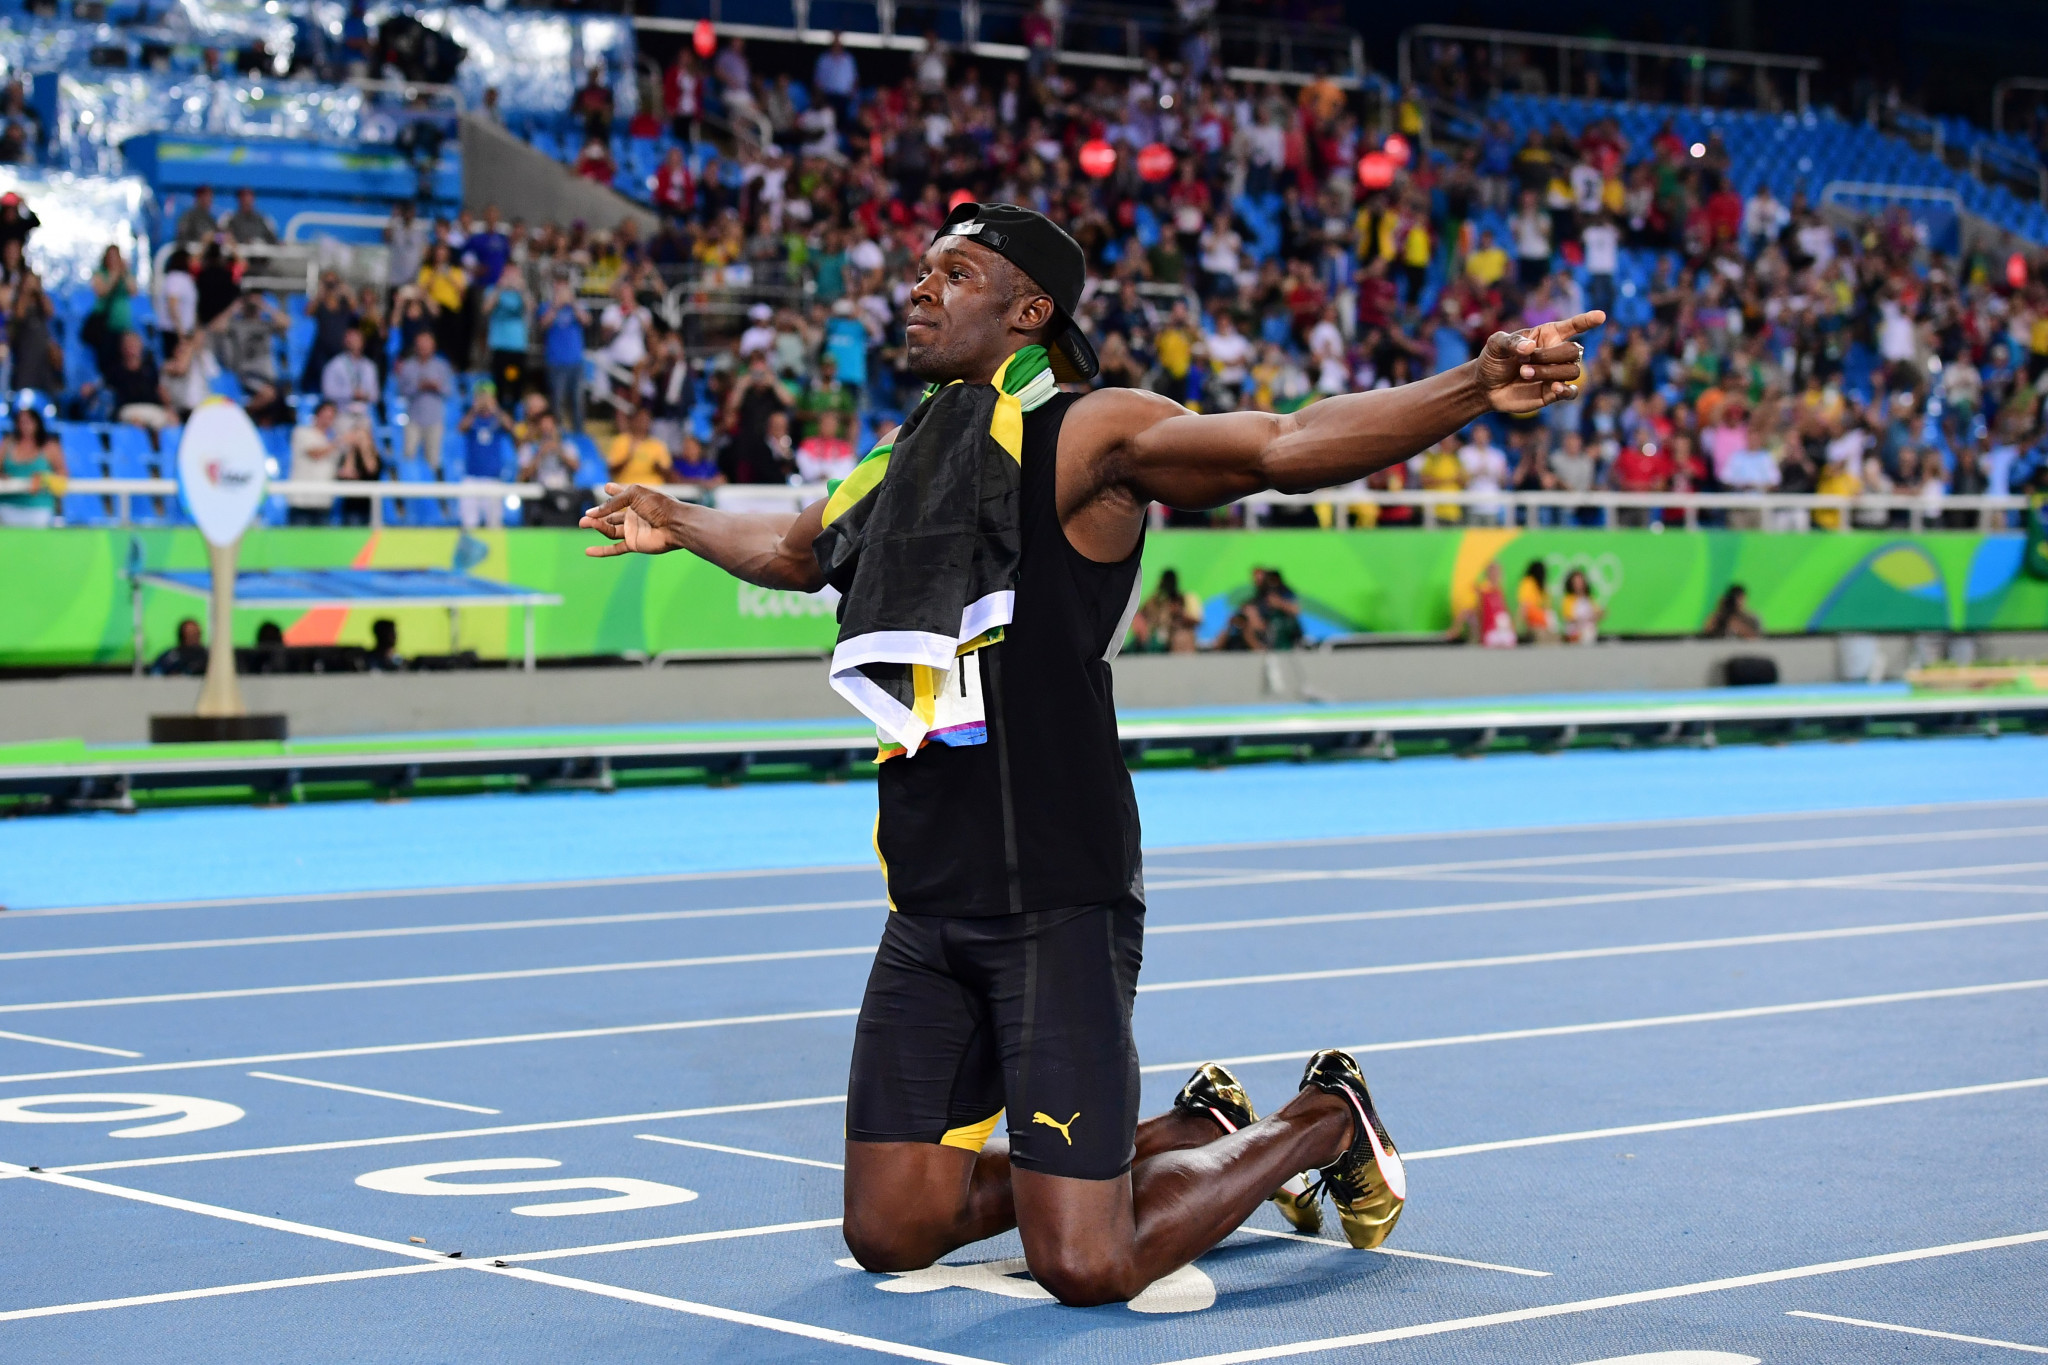 Jamaica's Usain Bolt celebrates his team's victory at the end of the Men's 4x100m Relay Final during the athletics event at the Rio 2016 Olympic Games at the Olympic Stadium in Rio de Janeiro ©Getty Images